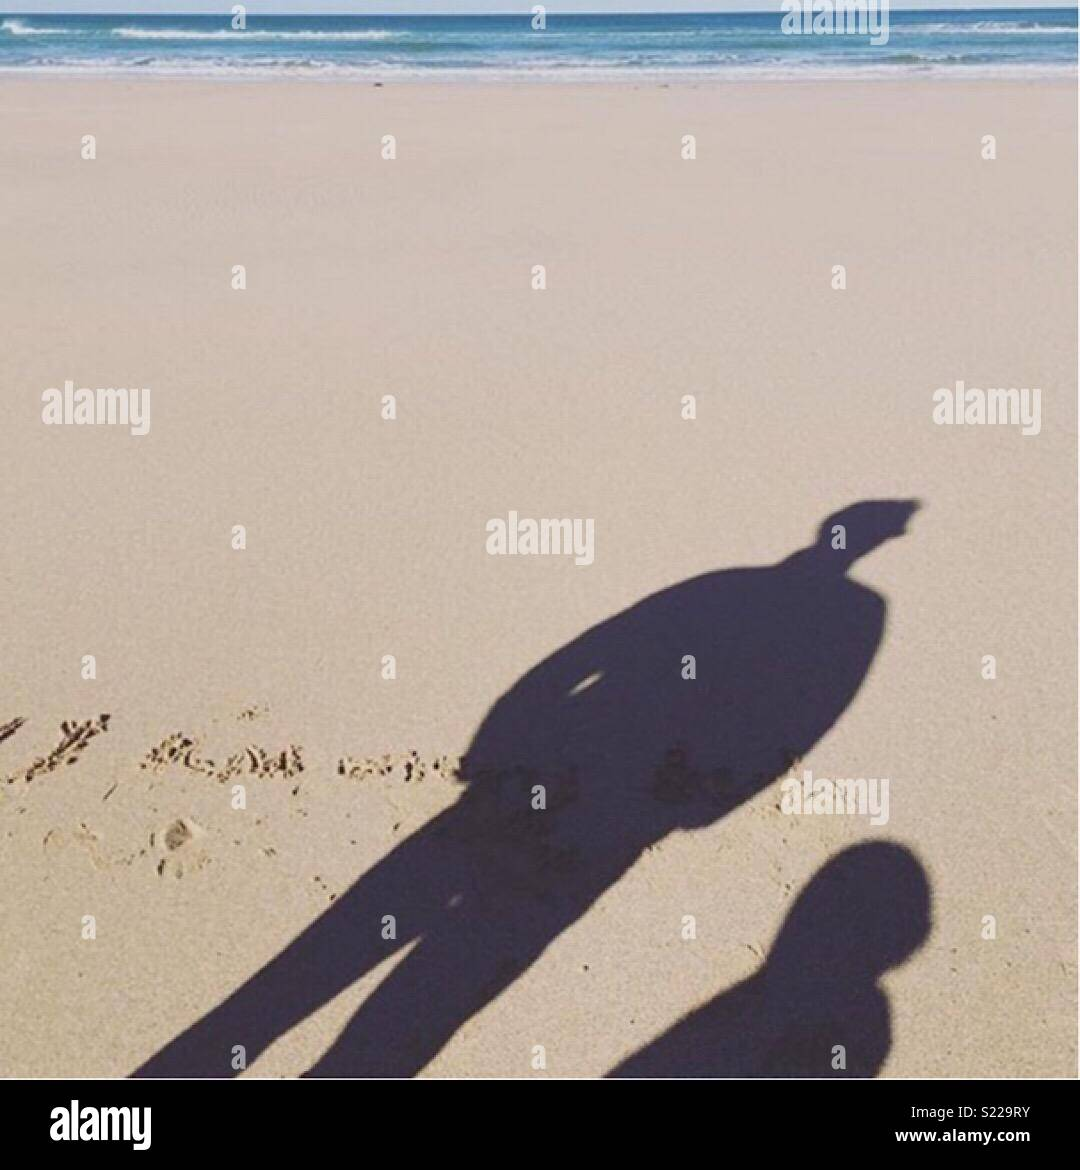 Beach shadows father and son - Stock Image